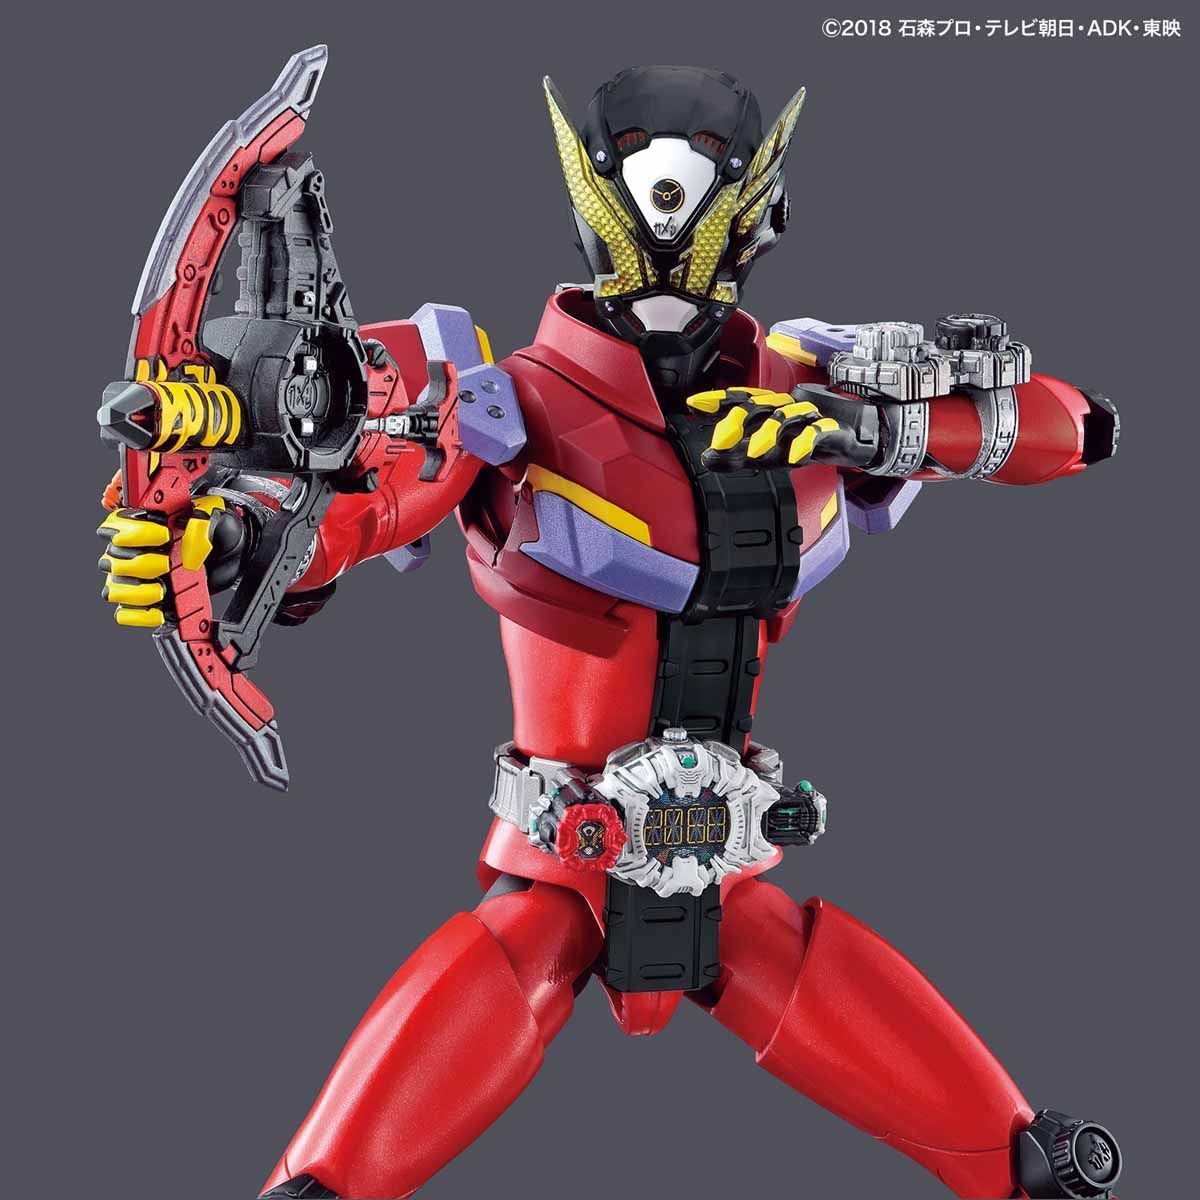 Kamen Rider: Figure-rise: Geiz - Model Kit image